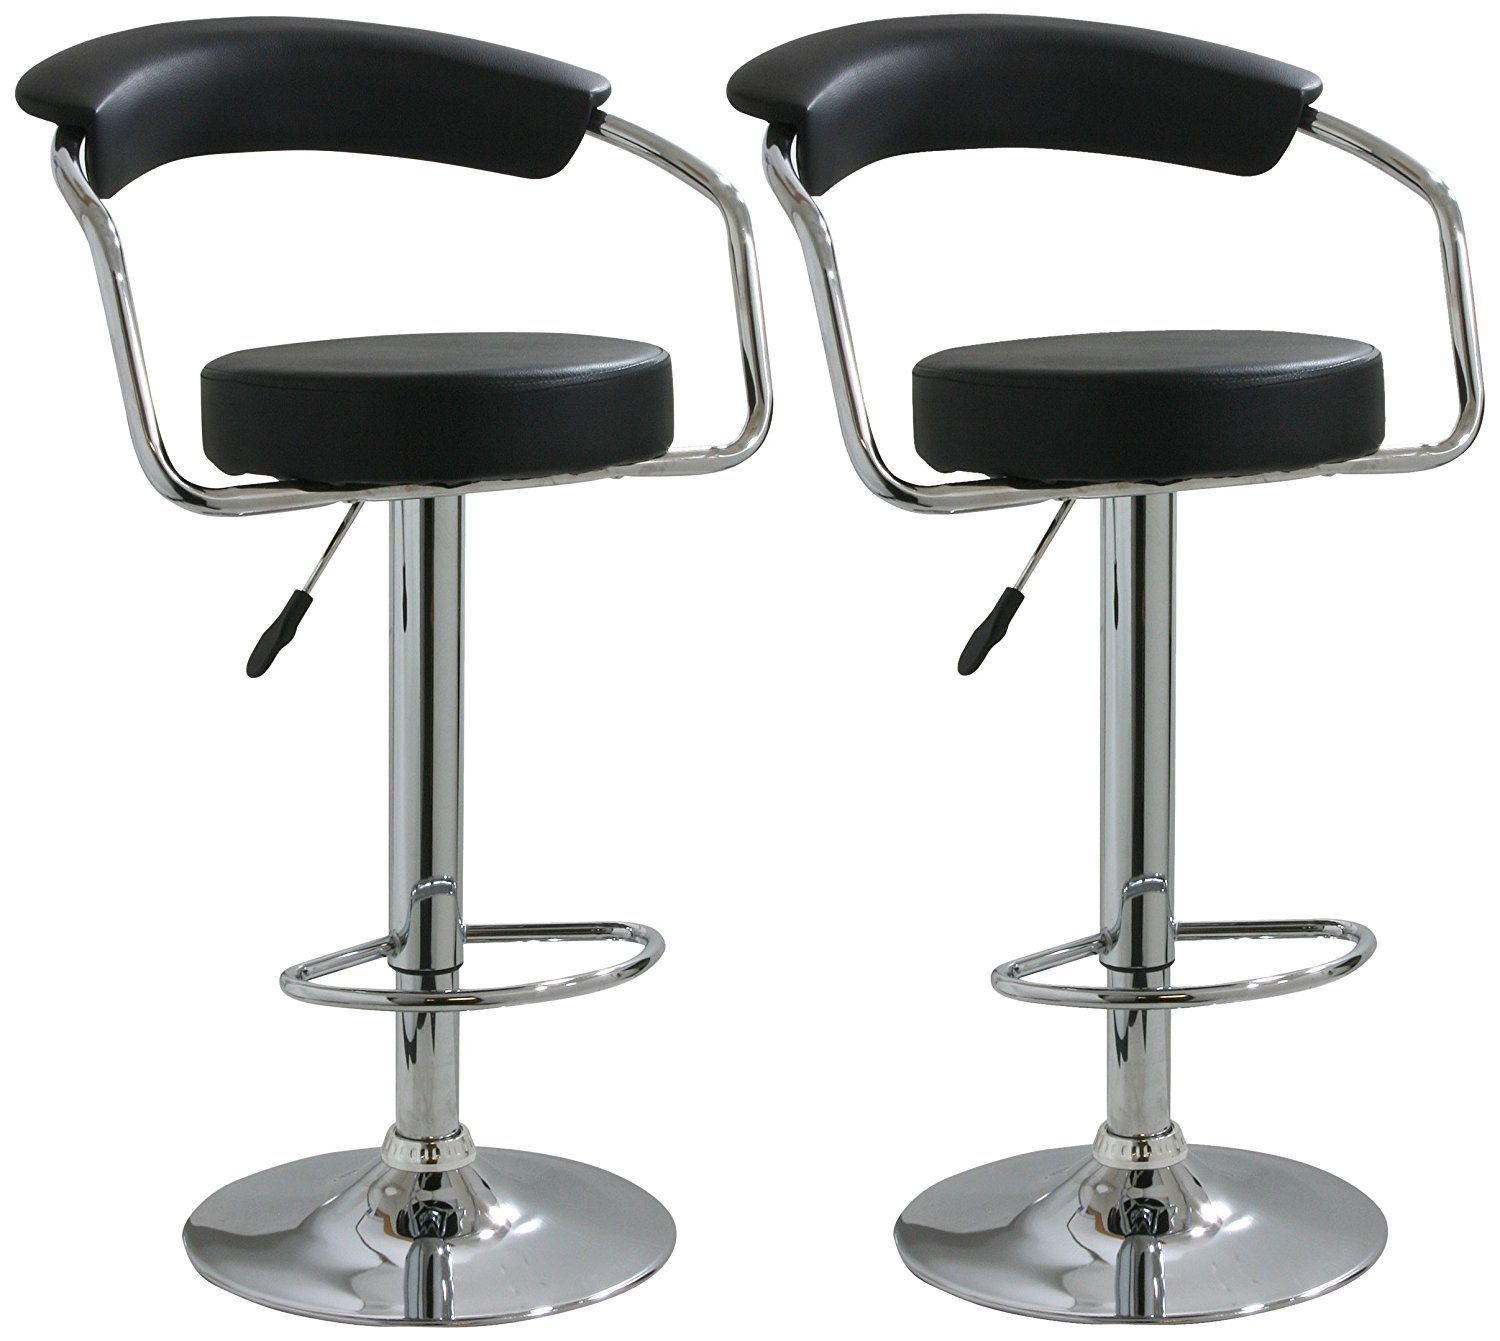 Bar Stool Chairs Details About Modern Set Of 2 Bar Stools Leather Adjustable Swivel Pub Chair In Multi Colors